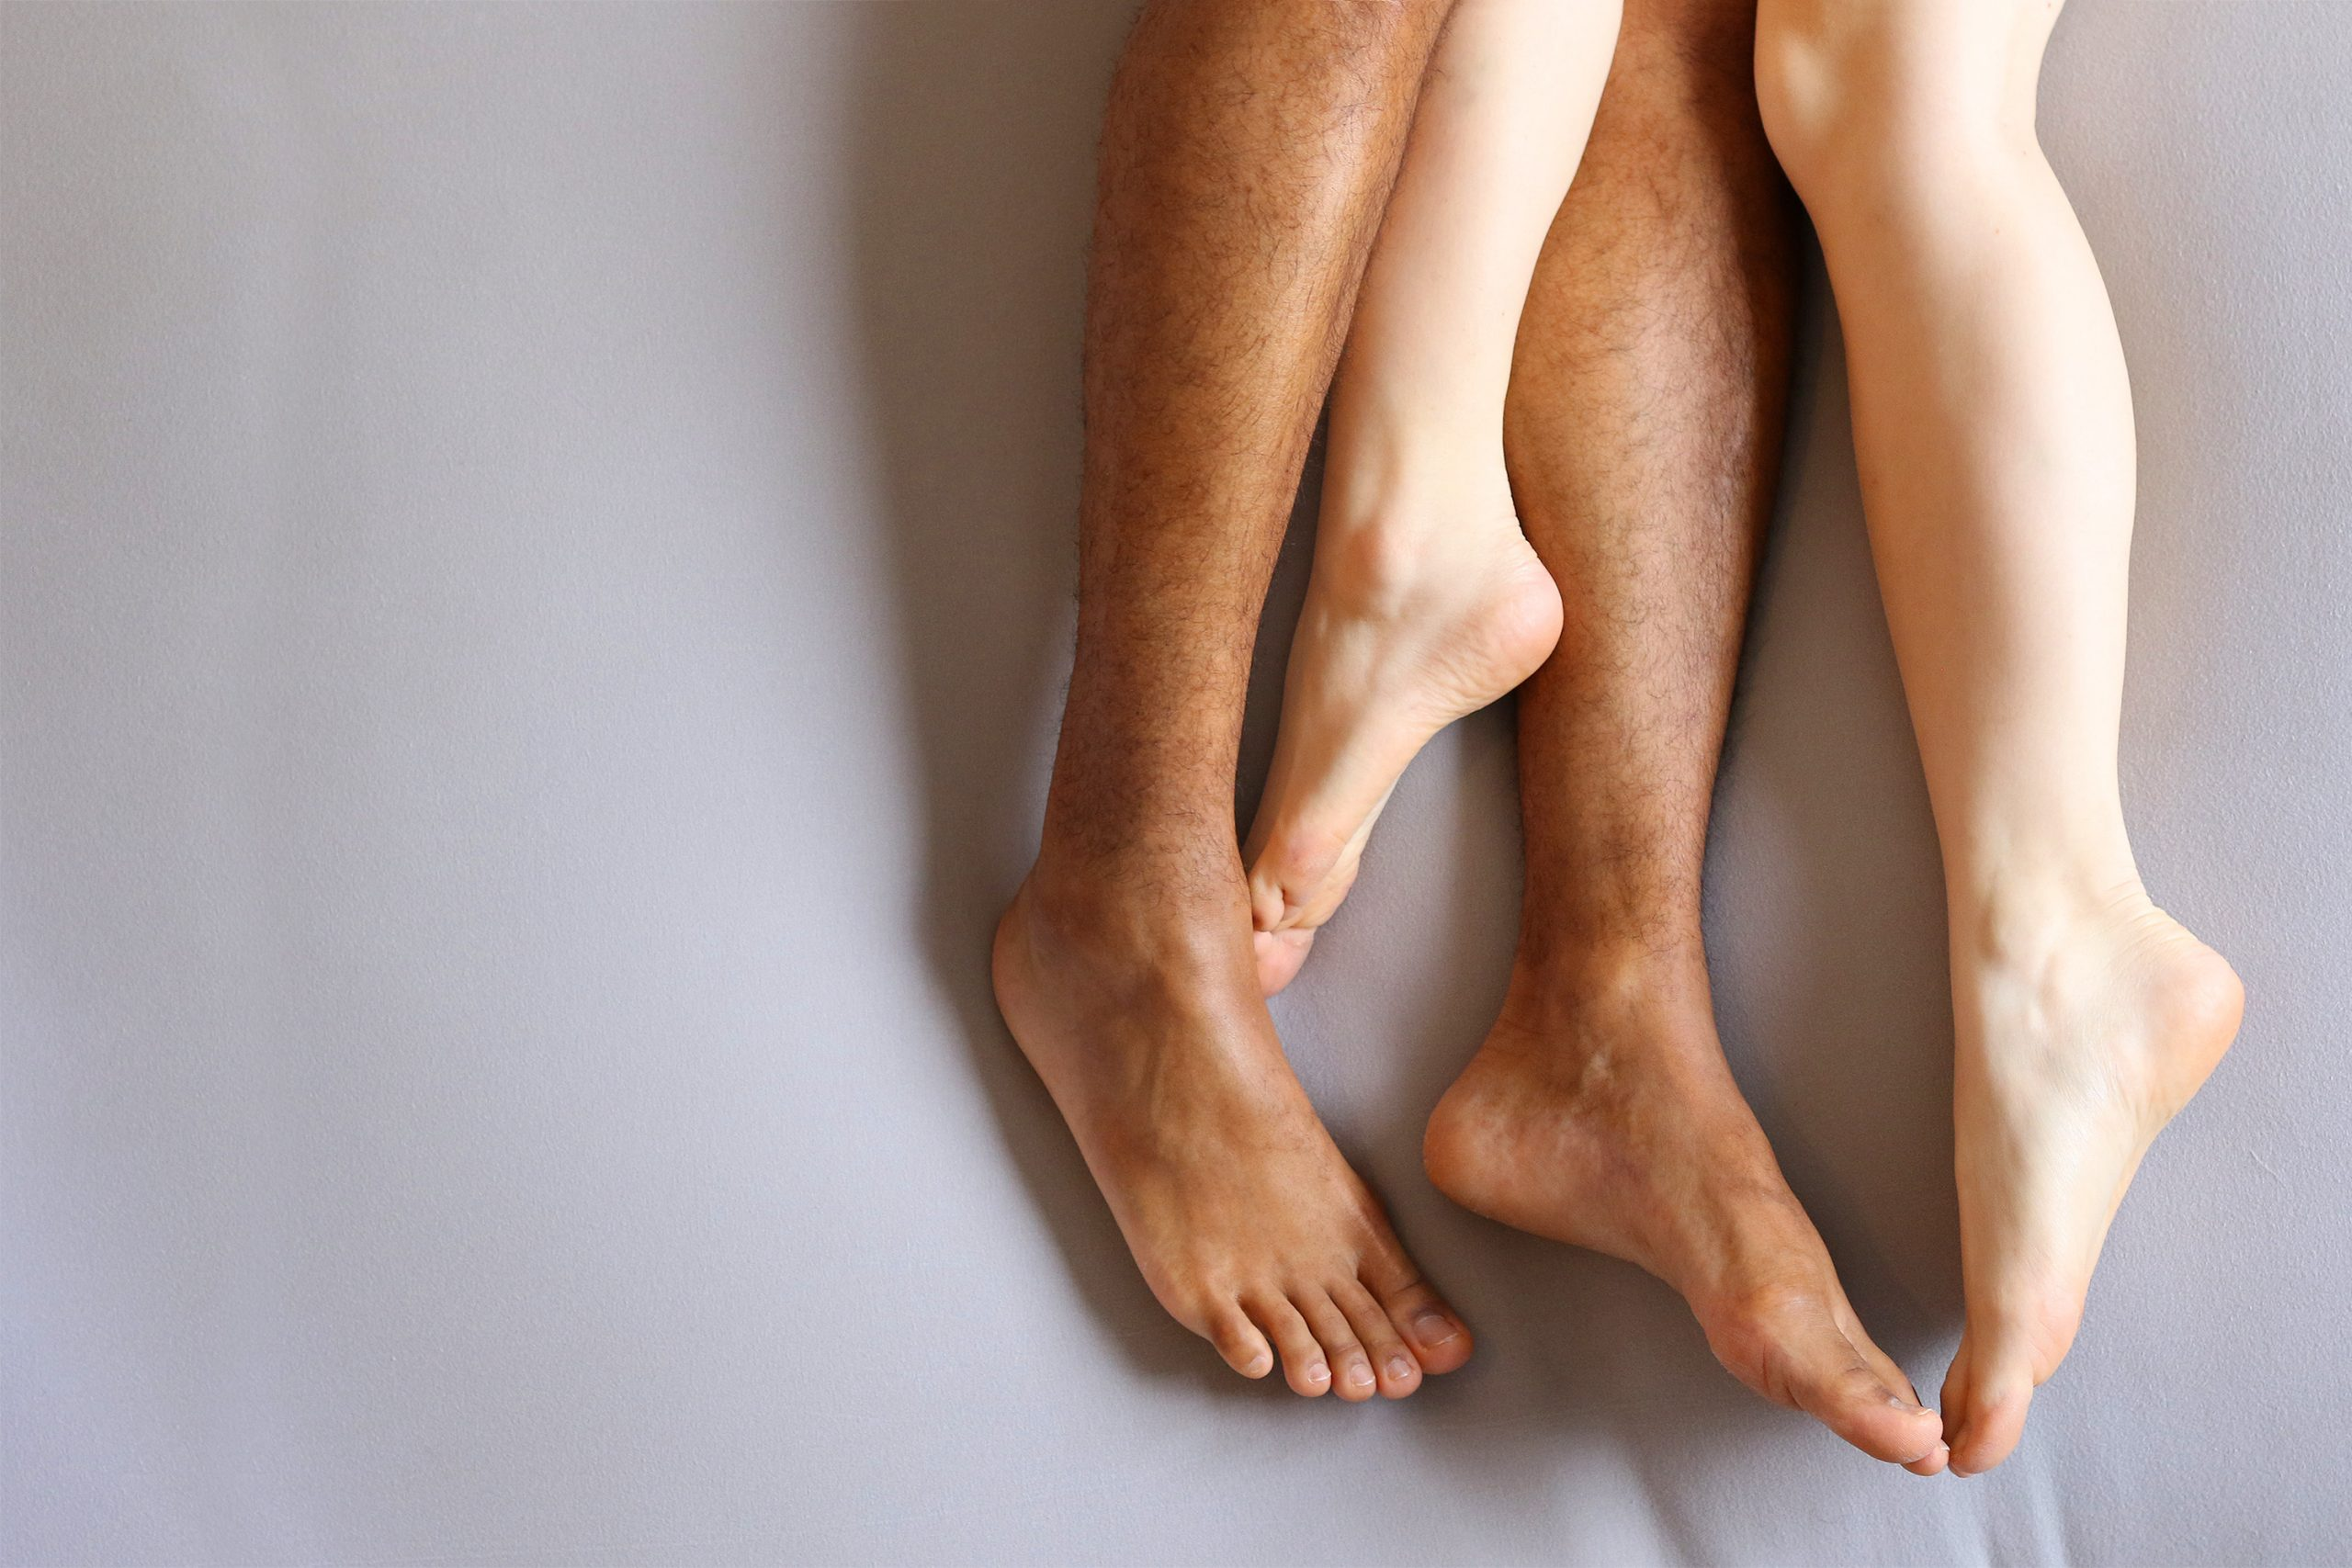 Legs of interracial couple in bed - copy space